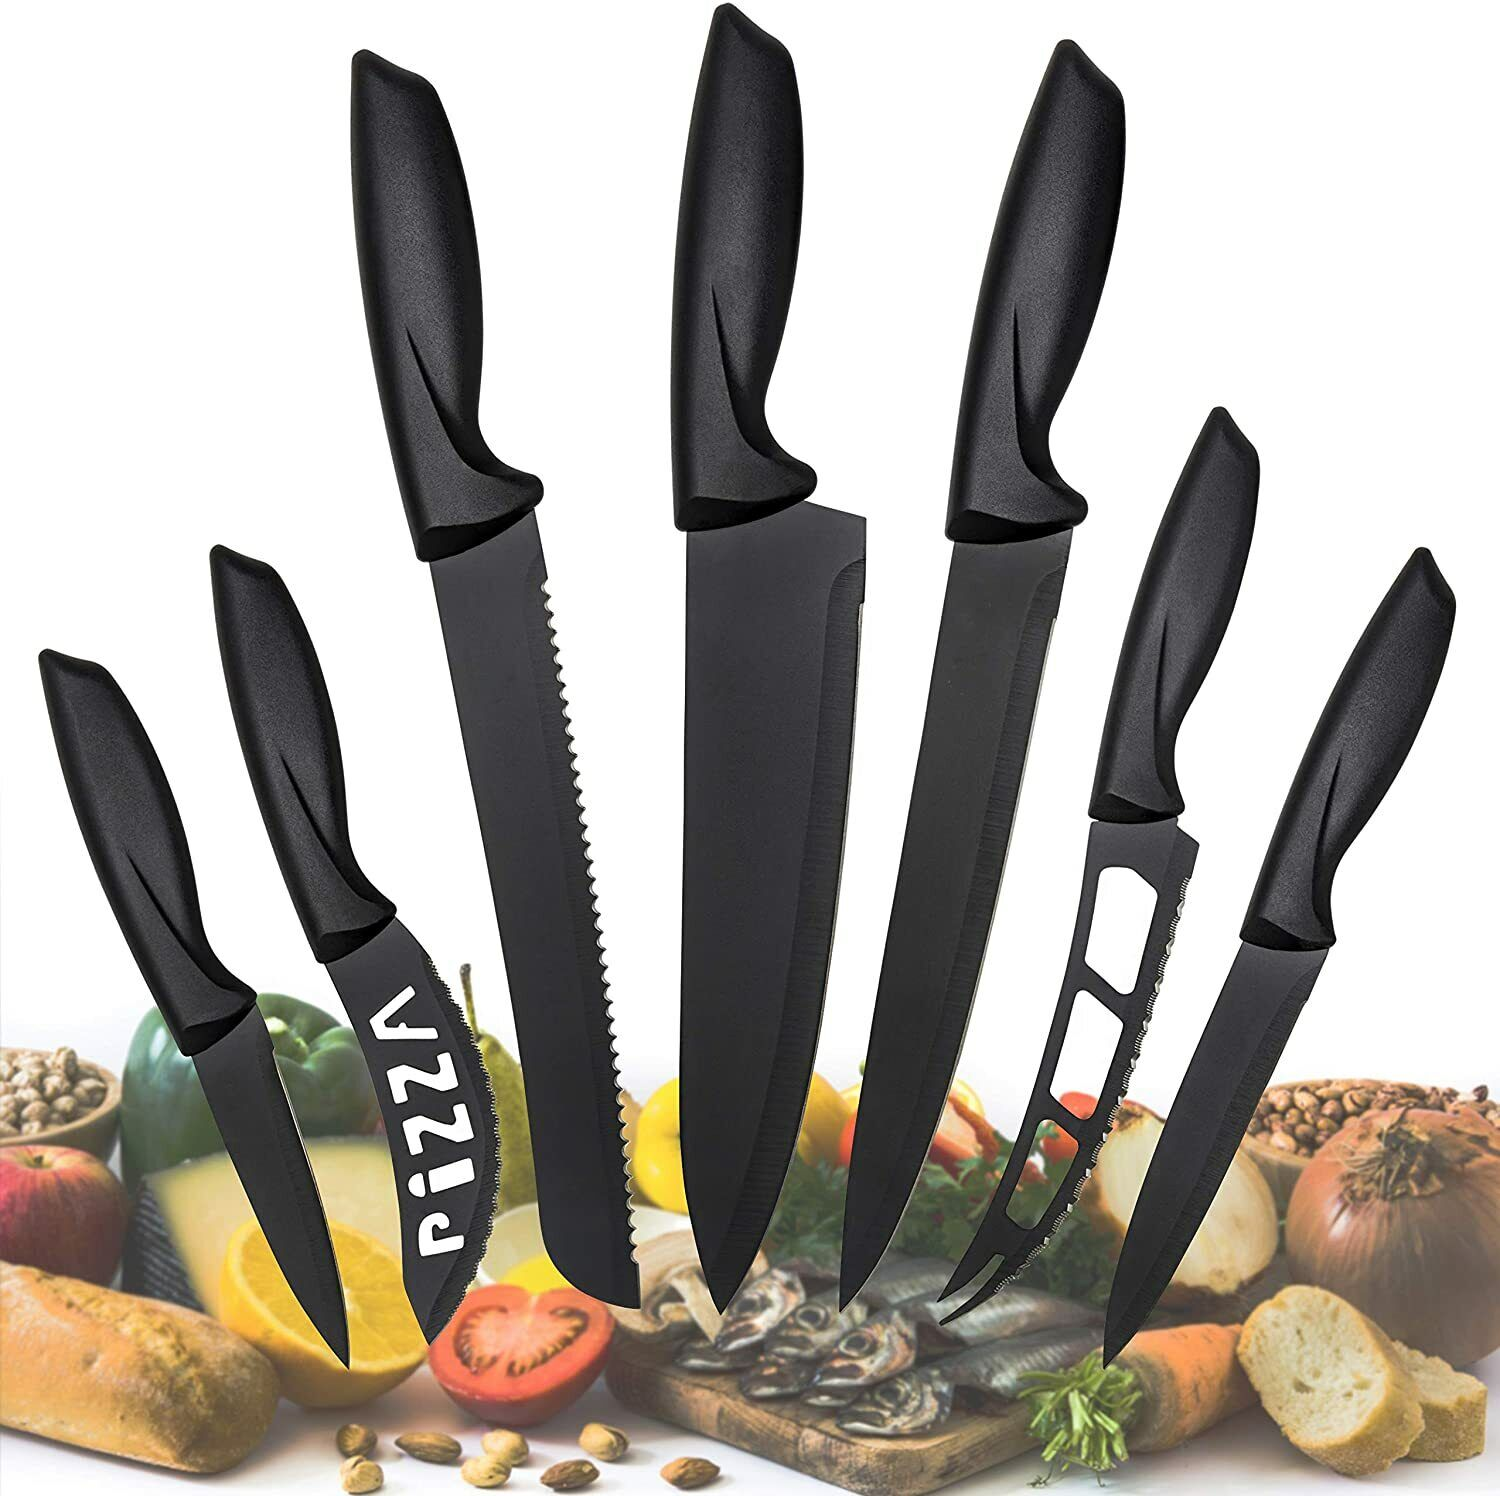 Professional Stainless Steel Kitchen Knife Set-7 Piece Cutlery Pizza knives Set